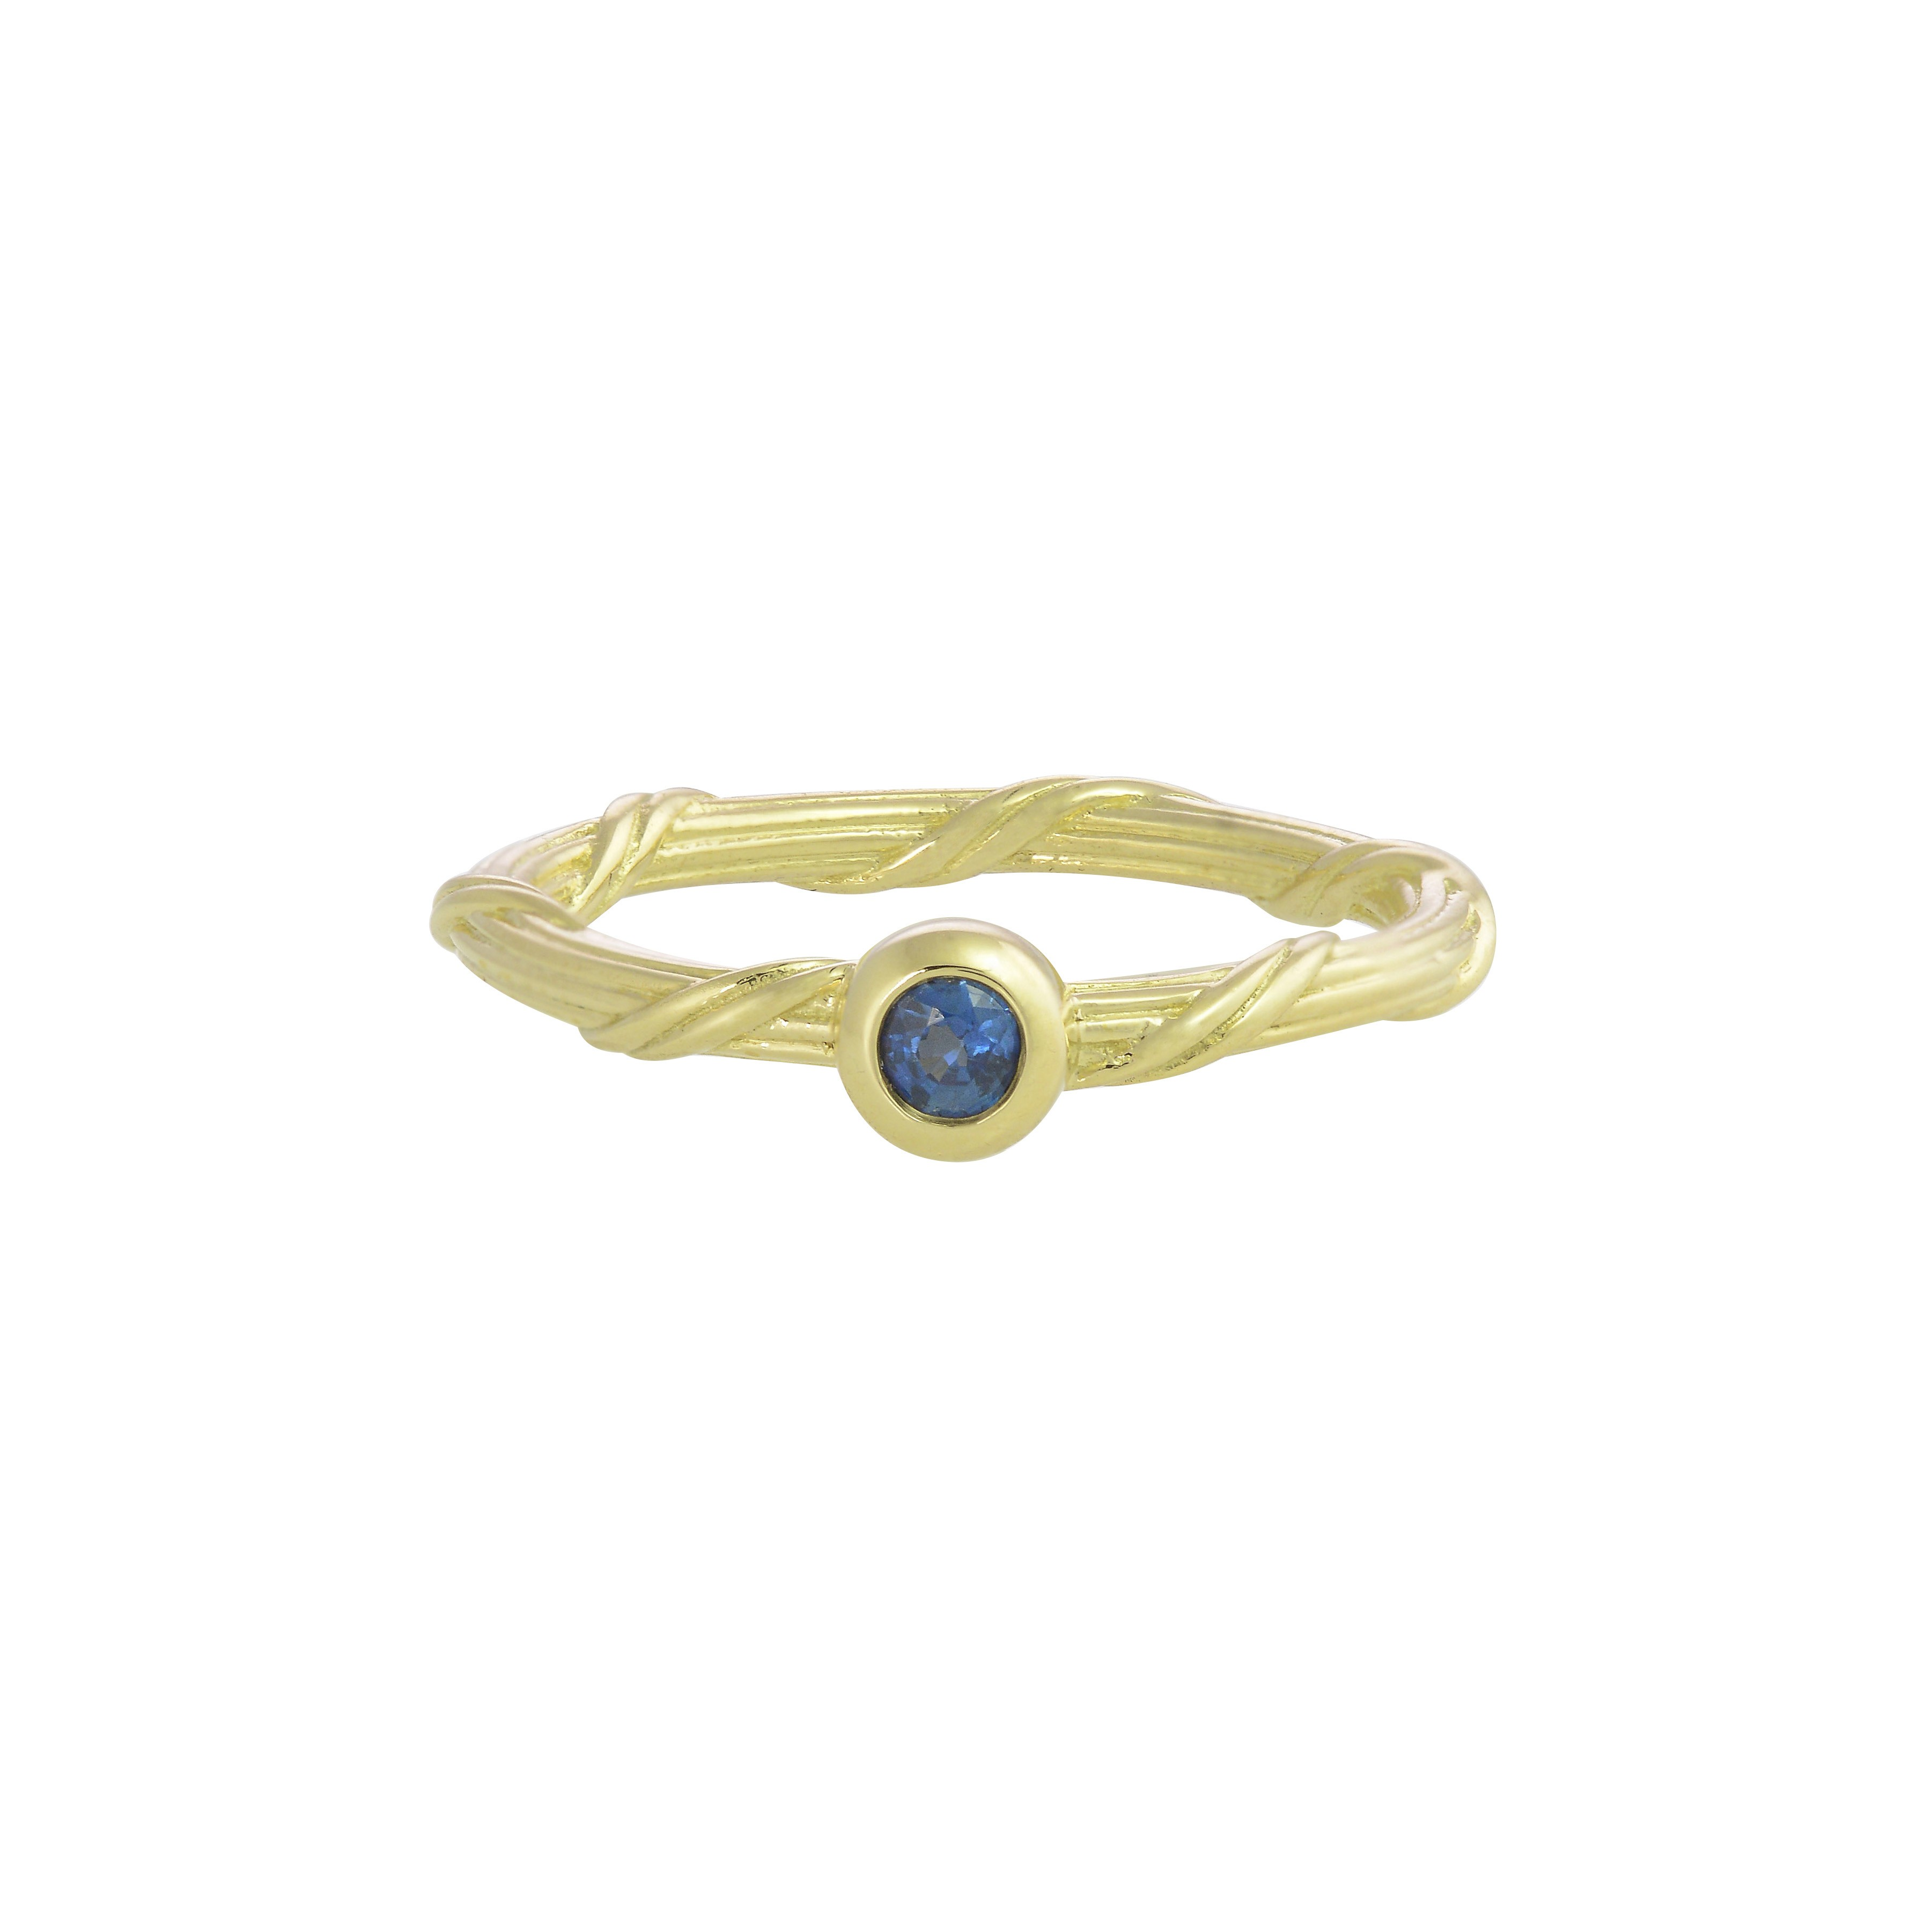 Heritage Sapphire Ring in 18K gold